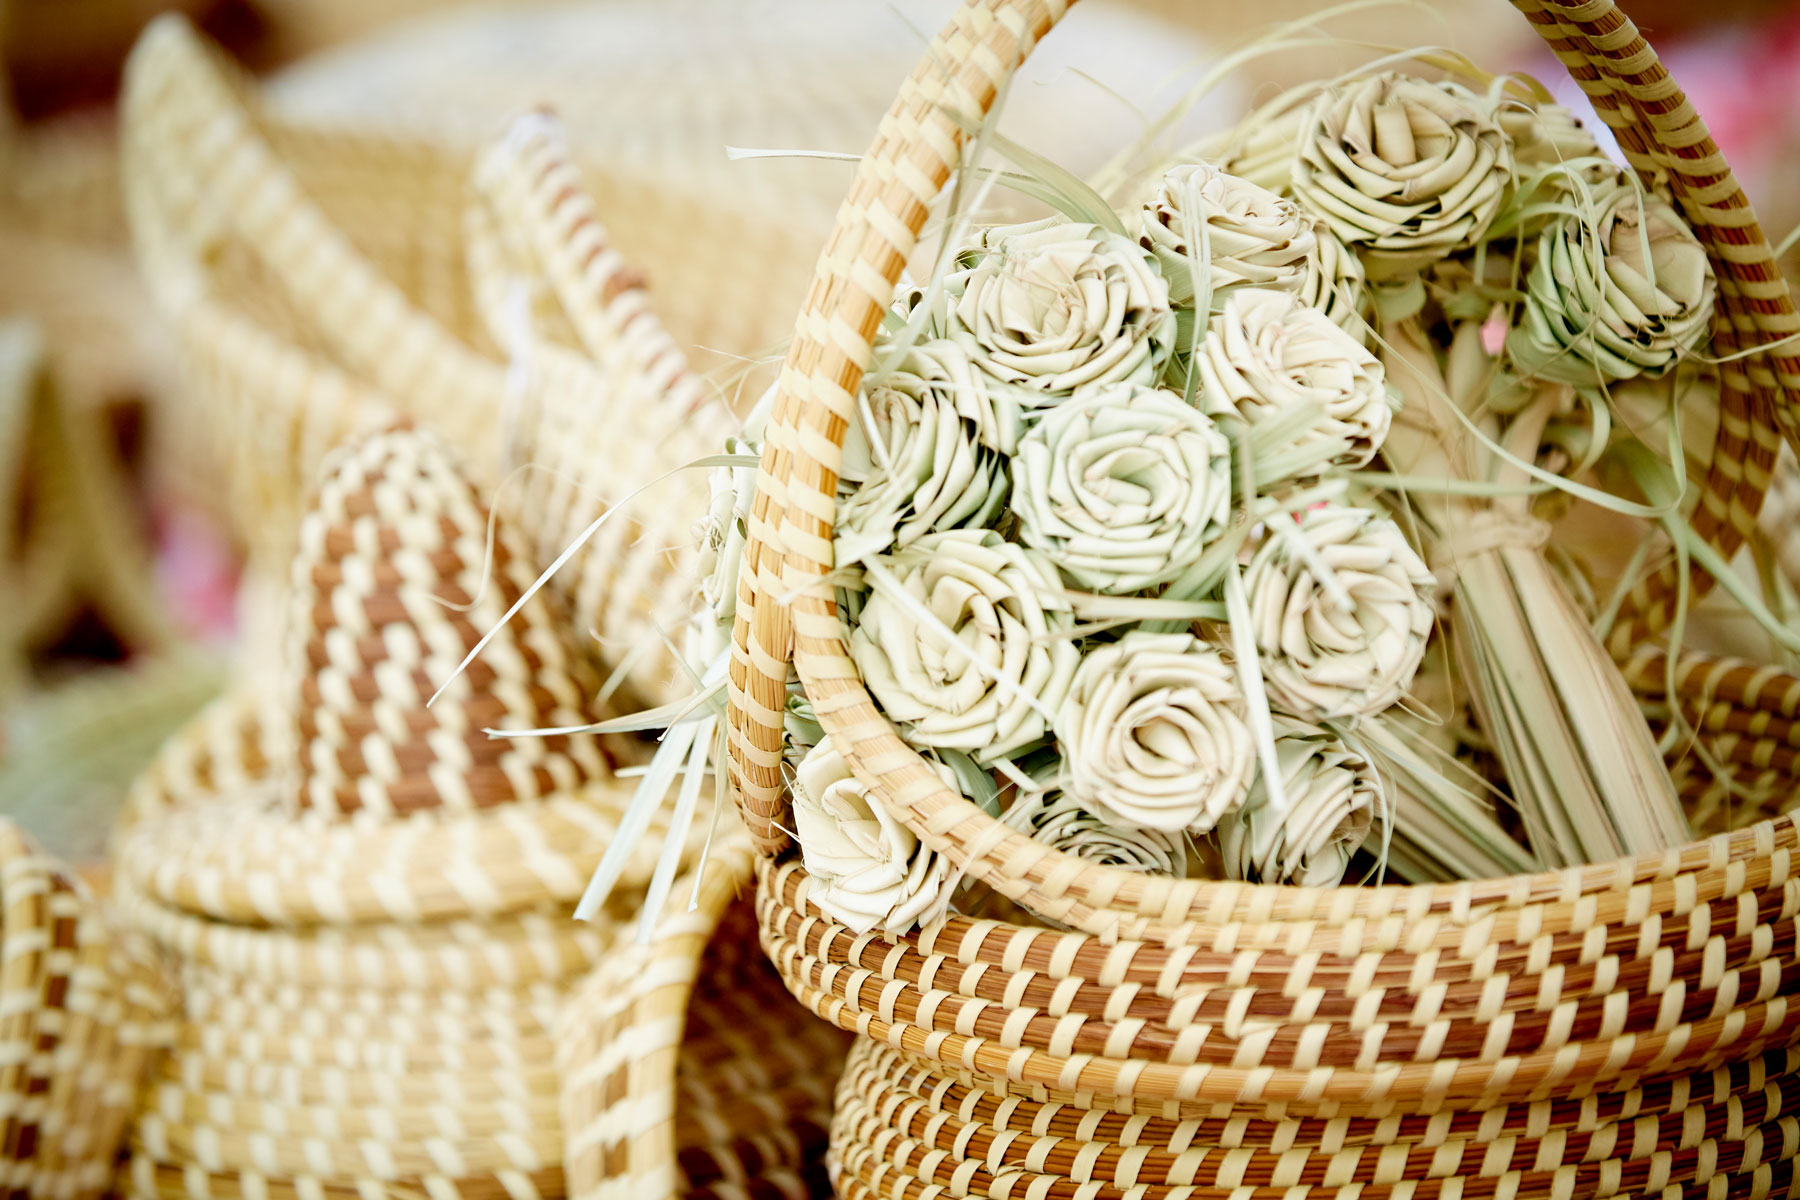 Hilton Head Island baskets